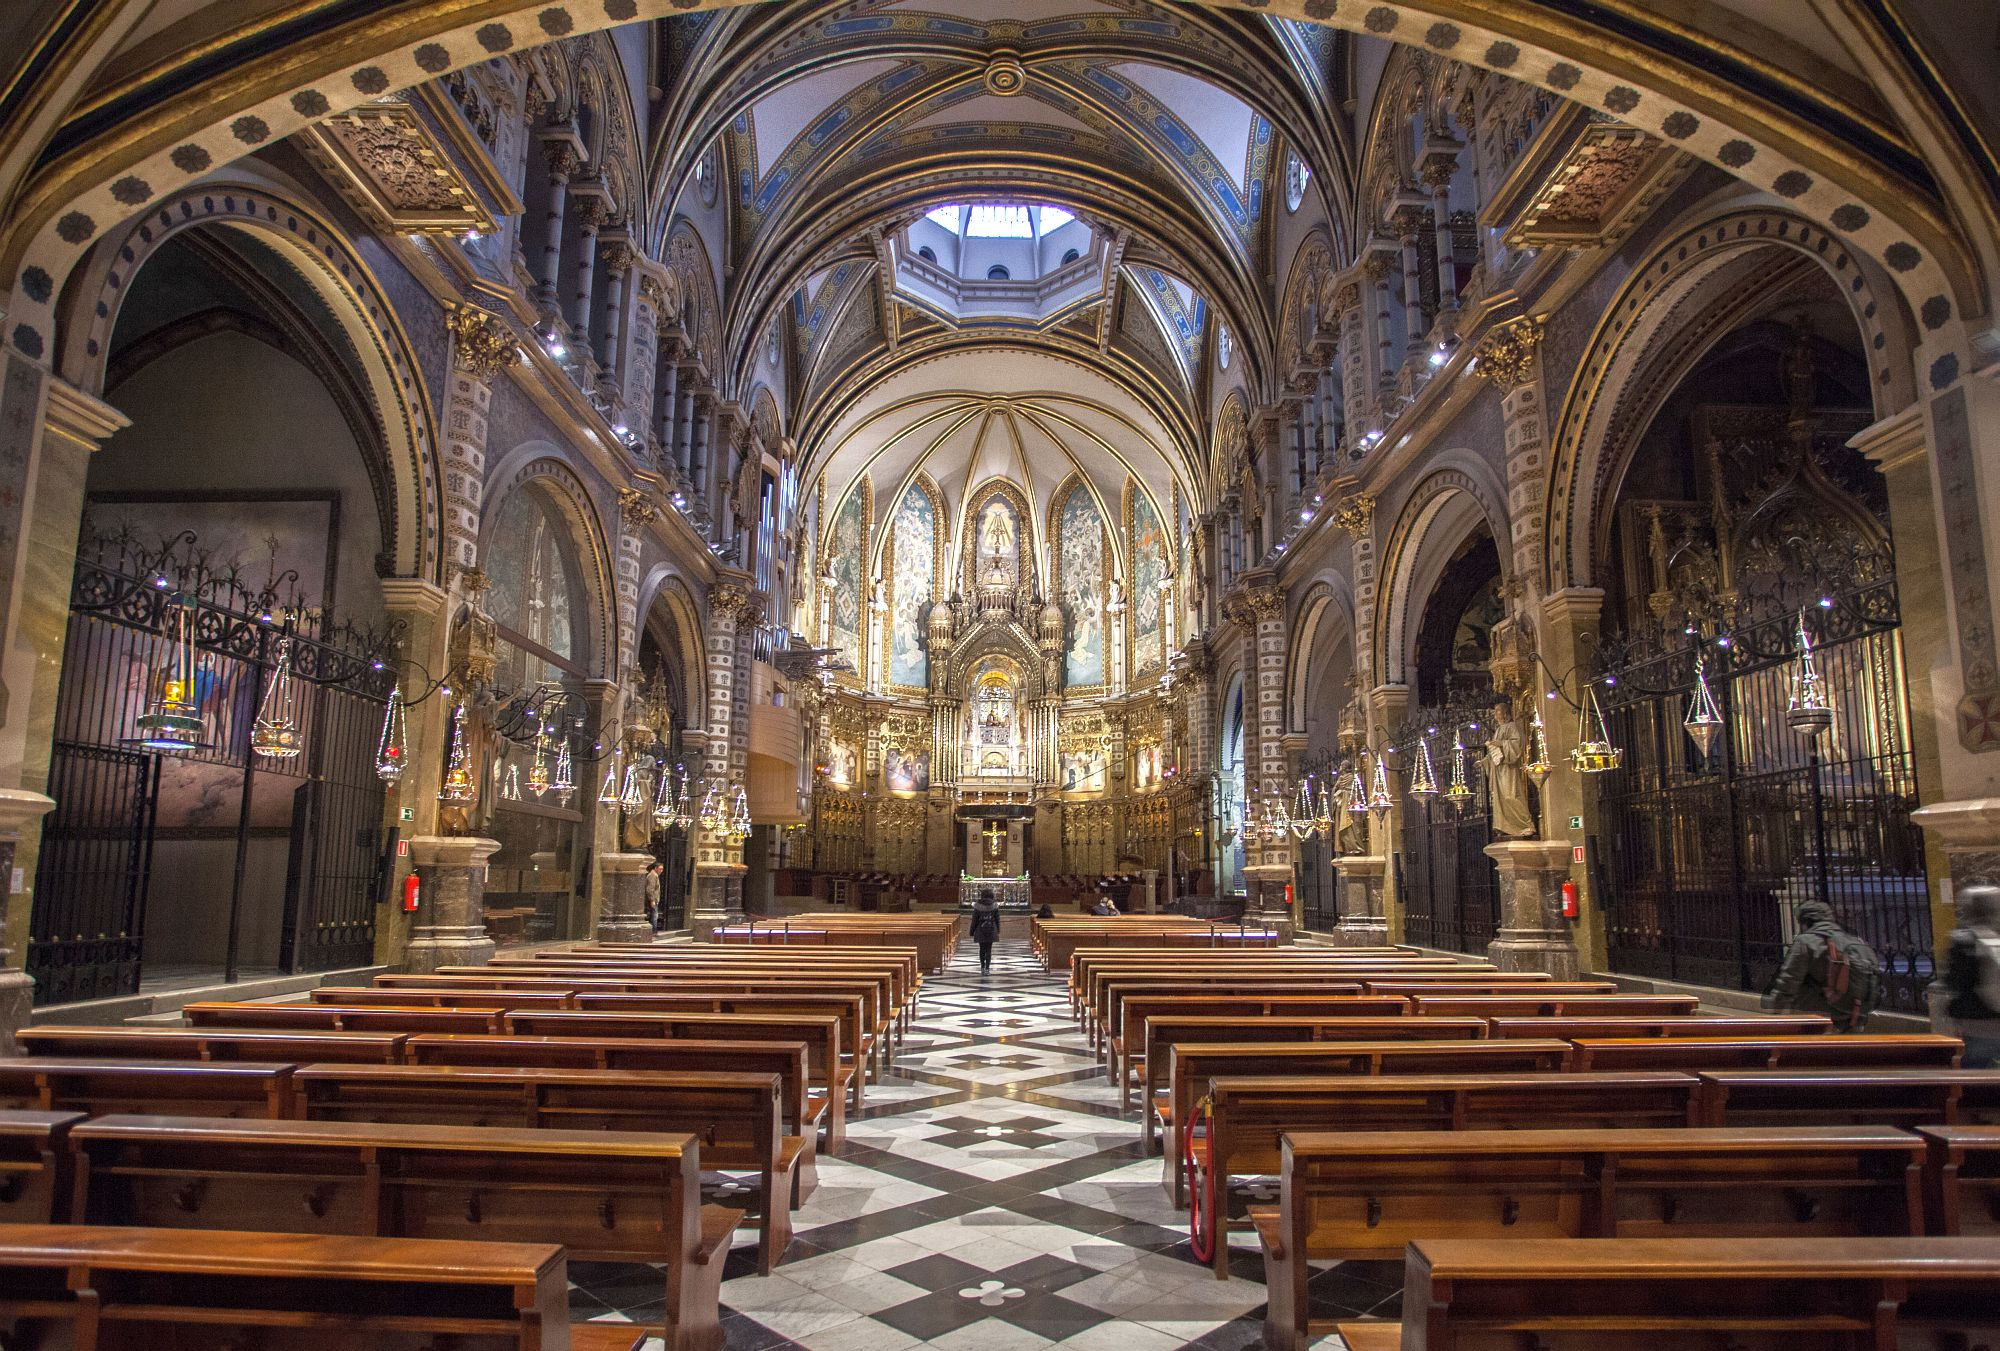 Not  my photo: This was inside the basilica